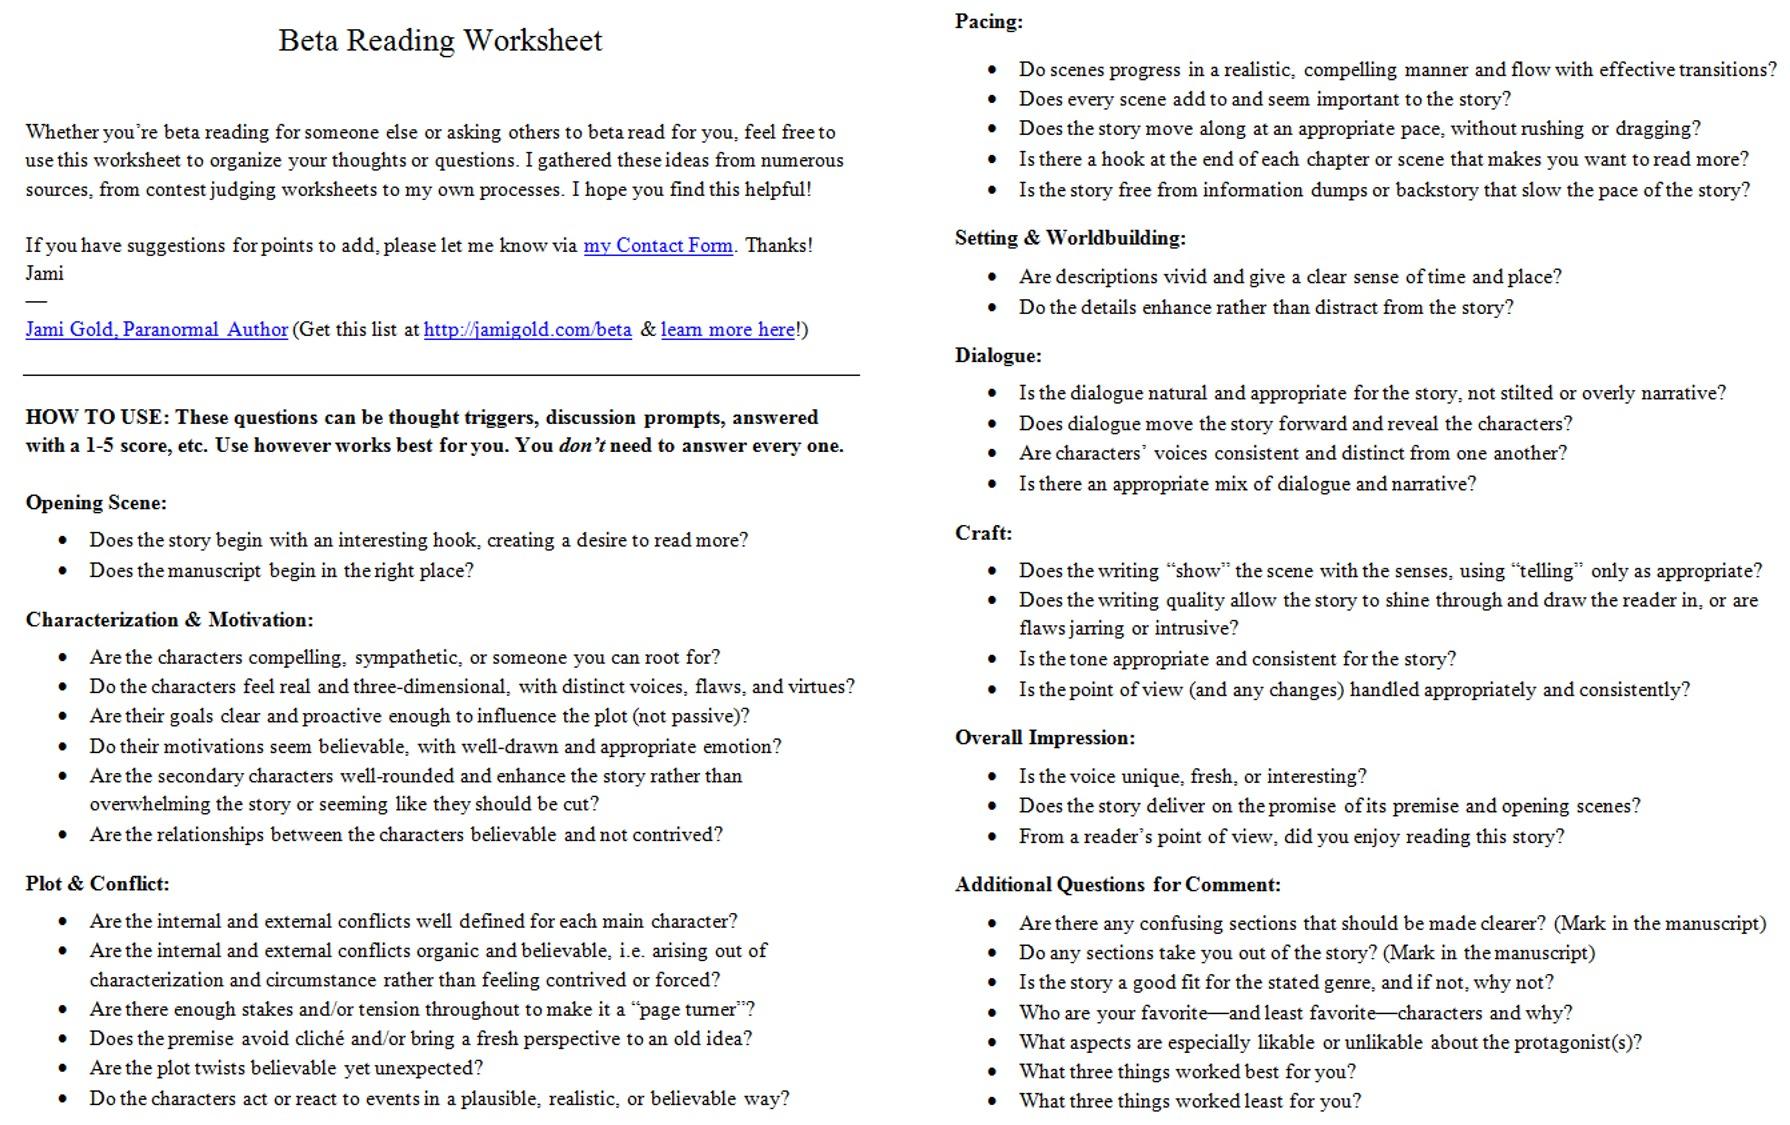 Aldiablosus  Stunning Worksheets For Writers  Jami Gold Paranormal Author With Gorgeous Screen Shot Of The Twopage Beta Reading Worksheet With Appealing Letter F Worksheets For Preschool Also Dividing Whole Numbers By Fractions Worksheet In Addition Irs Itemized Deductions Worksheet And Permutations And Combinations Worksheet With Answers As Well As Form  Worksheet Additionally Russian Revolution Worksheet From Jamigoldcom With Aldiablosus  Gorgeous Worksheets For Writers  Jami Gold Paranormal Author With Appealing Screen Shot Of The Twopage Beta Reading Worksheet And Stunning Letter F Worksheets For Preschool Also Dividing Whole Numbers By Fractions Worksheet In Addition Irs Itemized Deductions Worksheet From Jamigoldcom